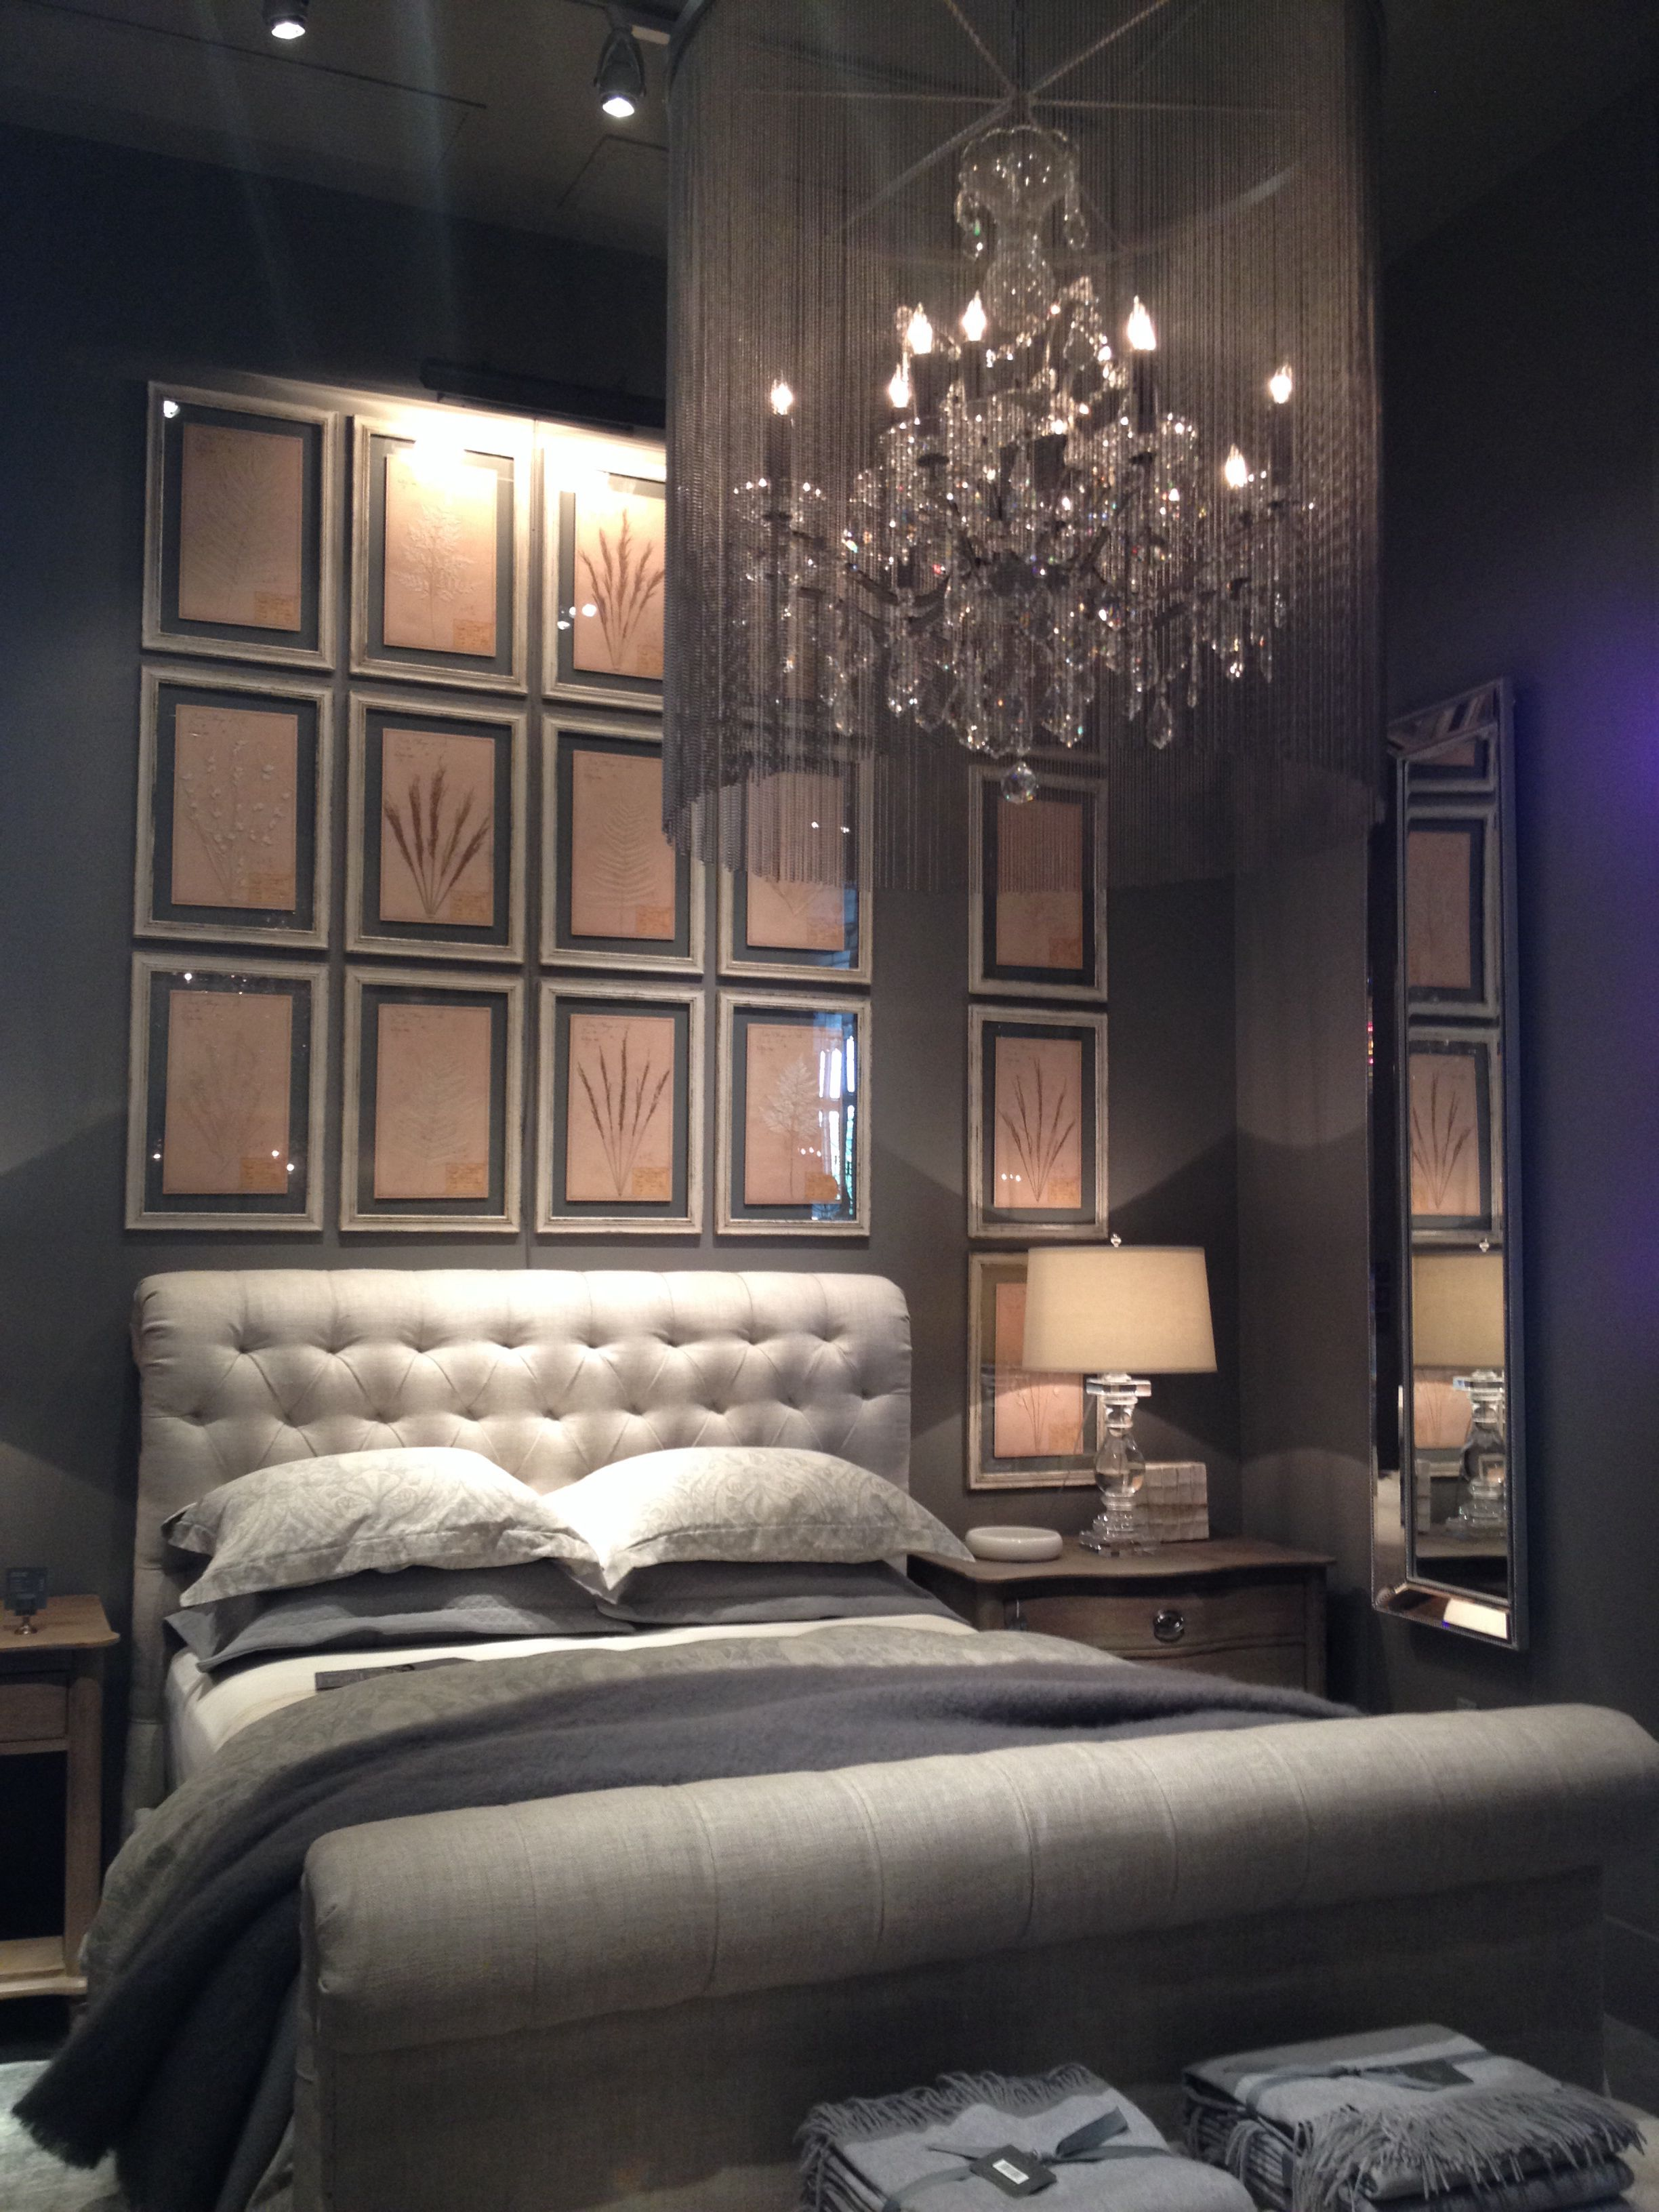 Restoration hardware bedroom - Restoration Hardware Bedroom Gray